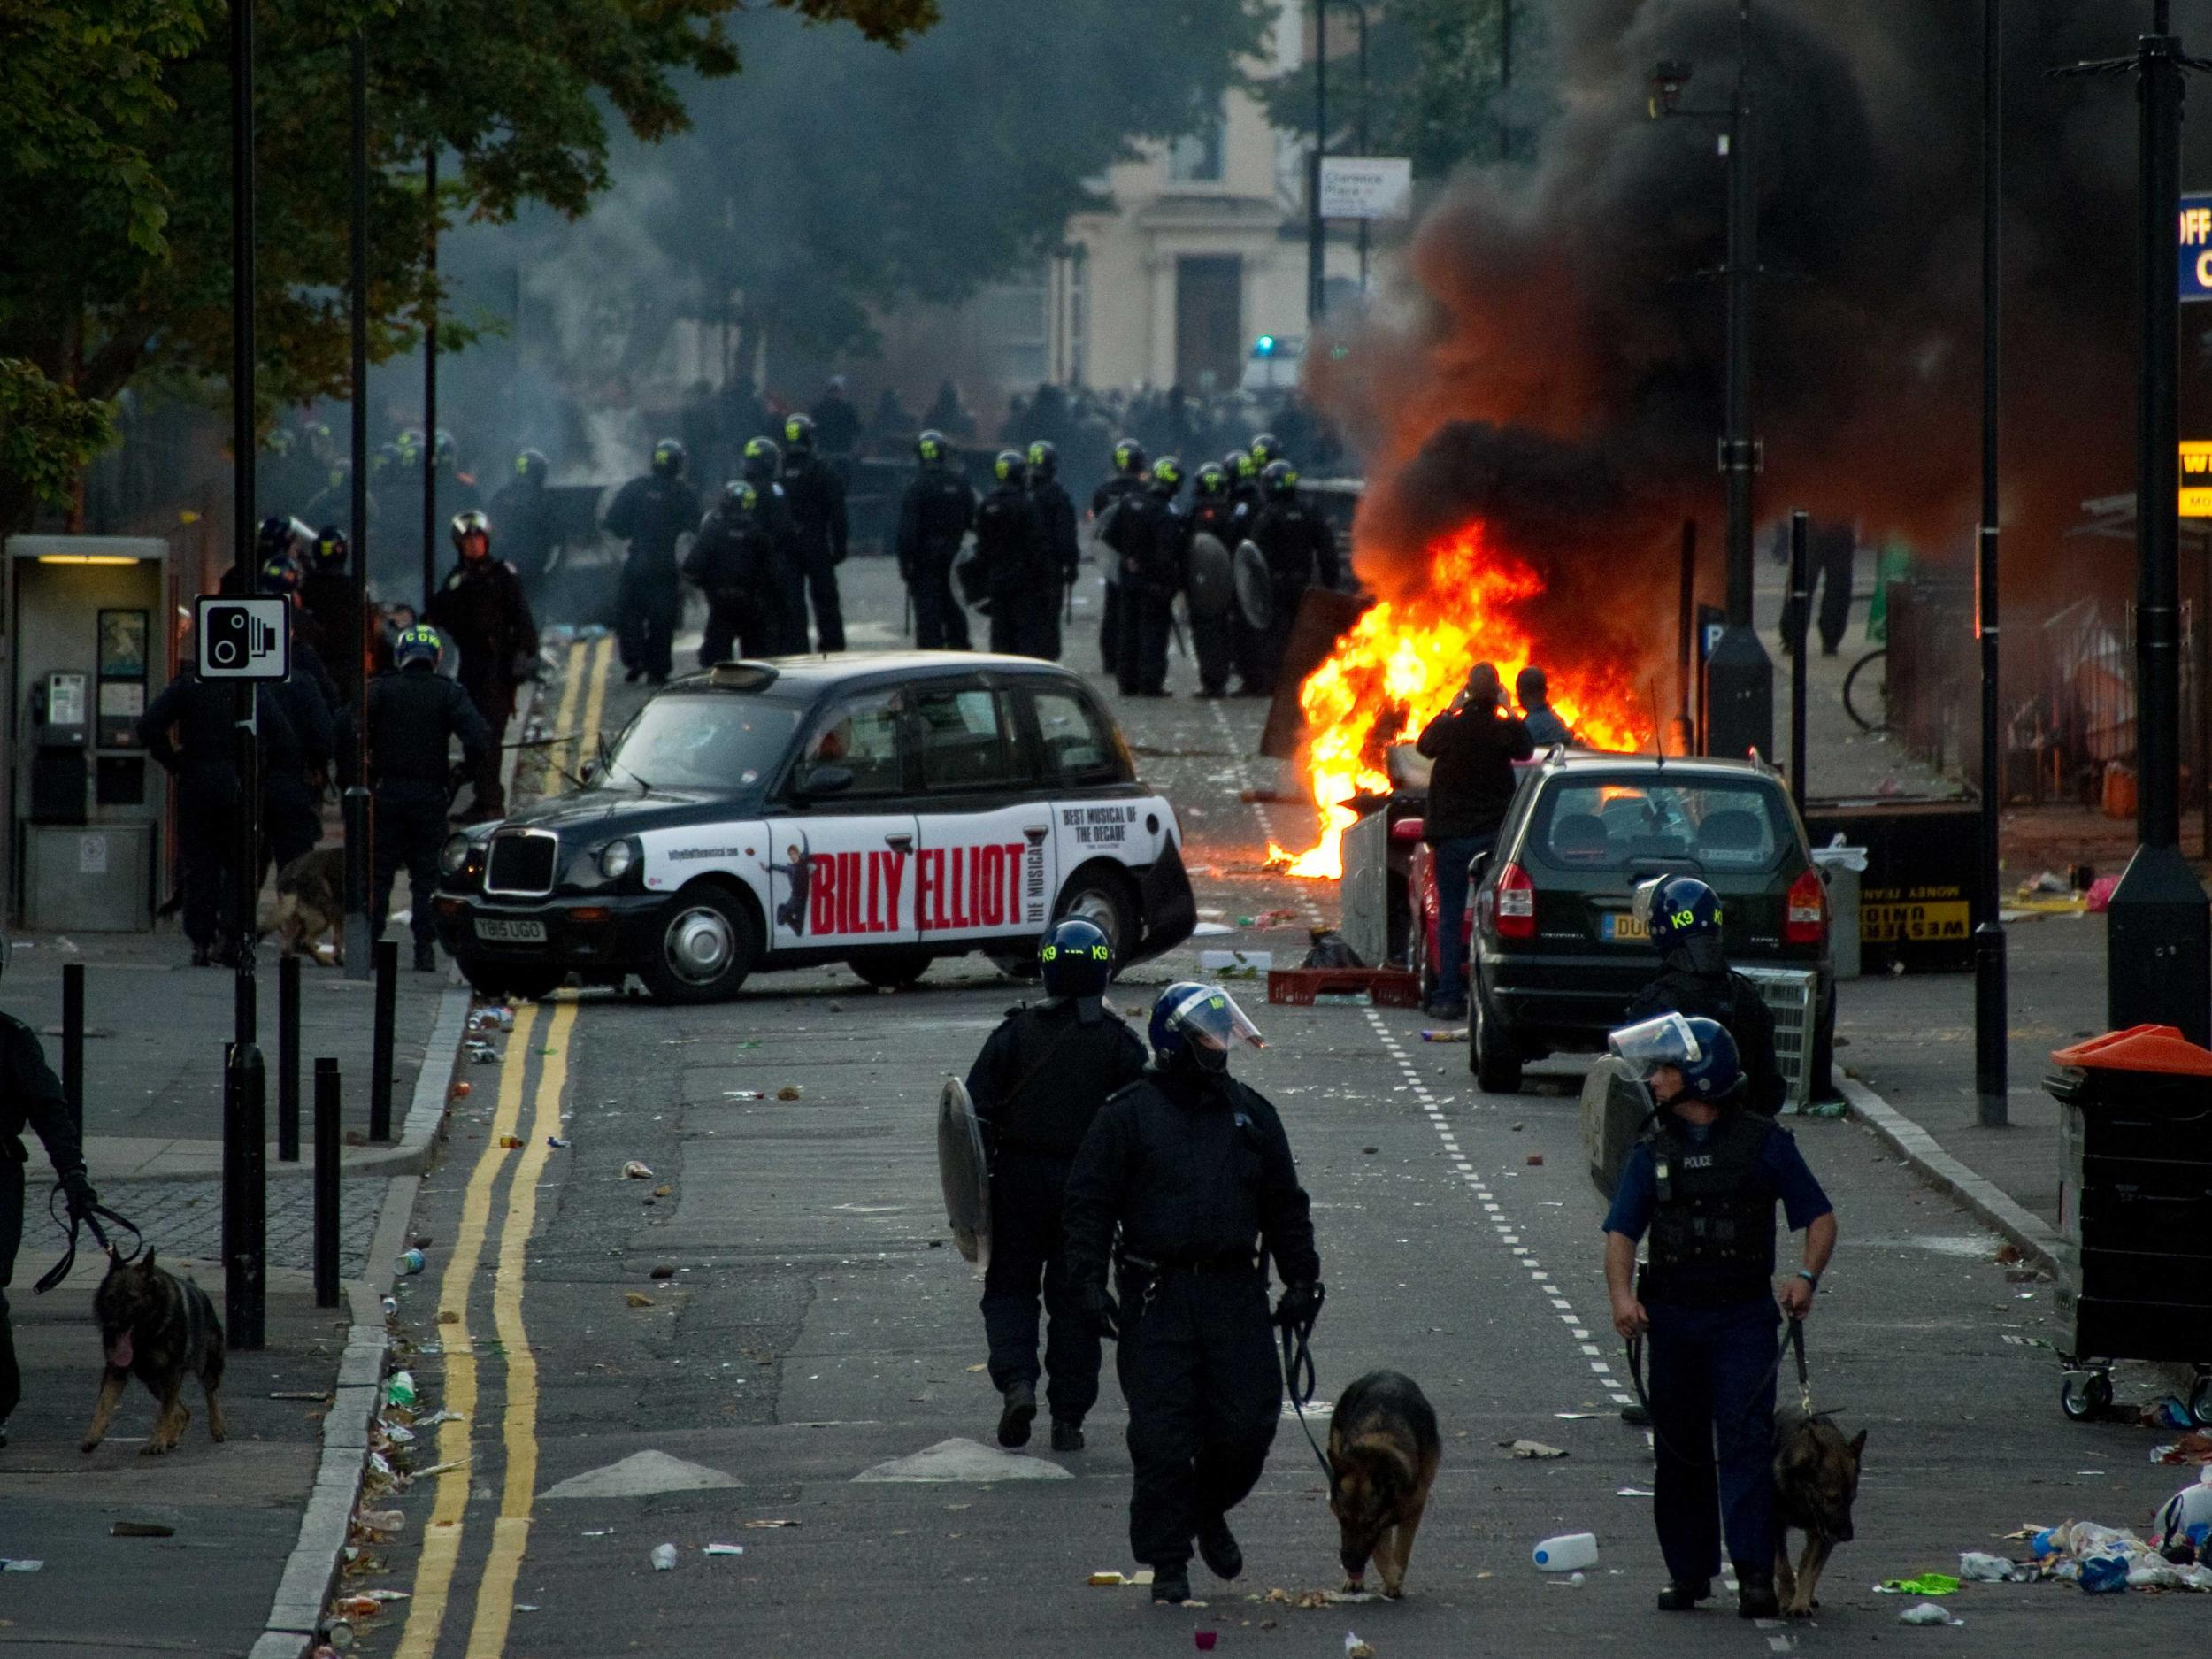 The riots in London in 2011